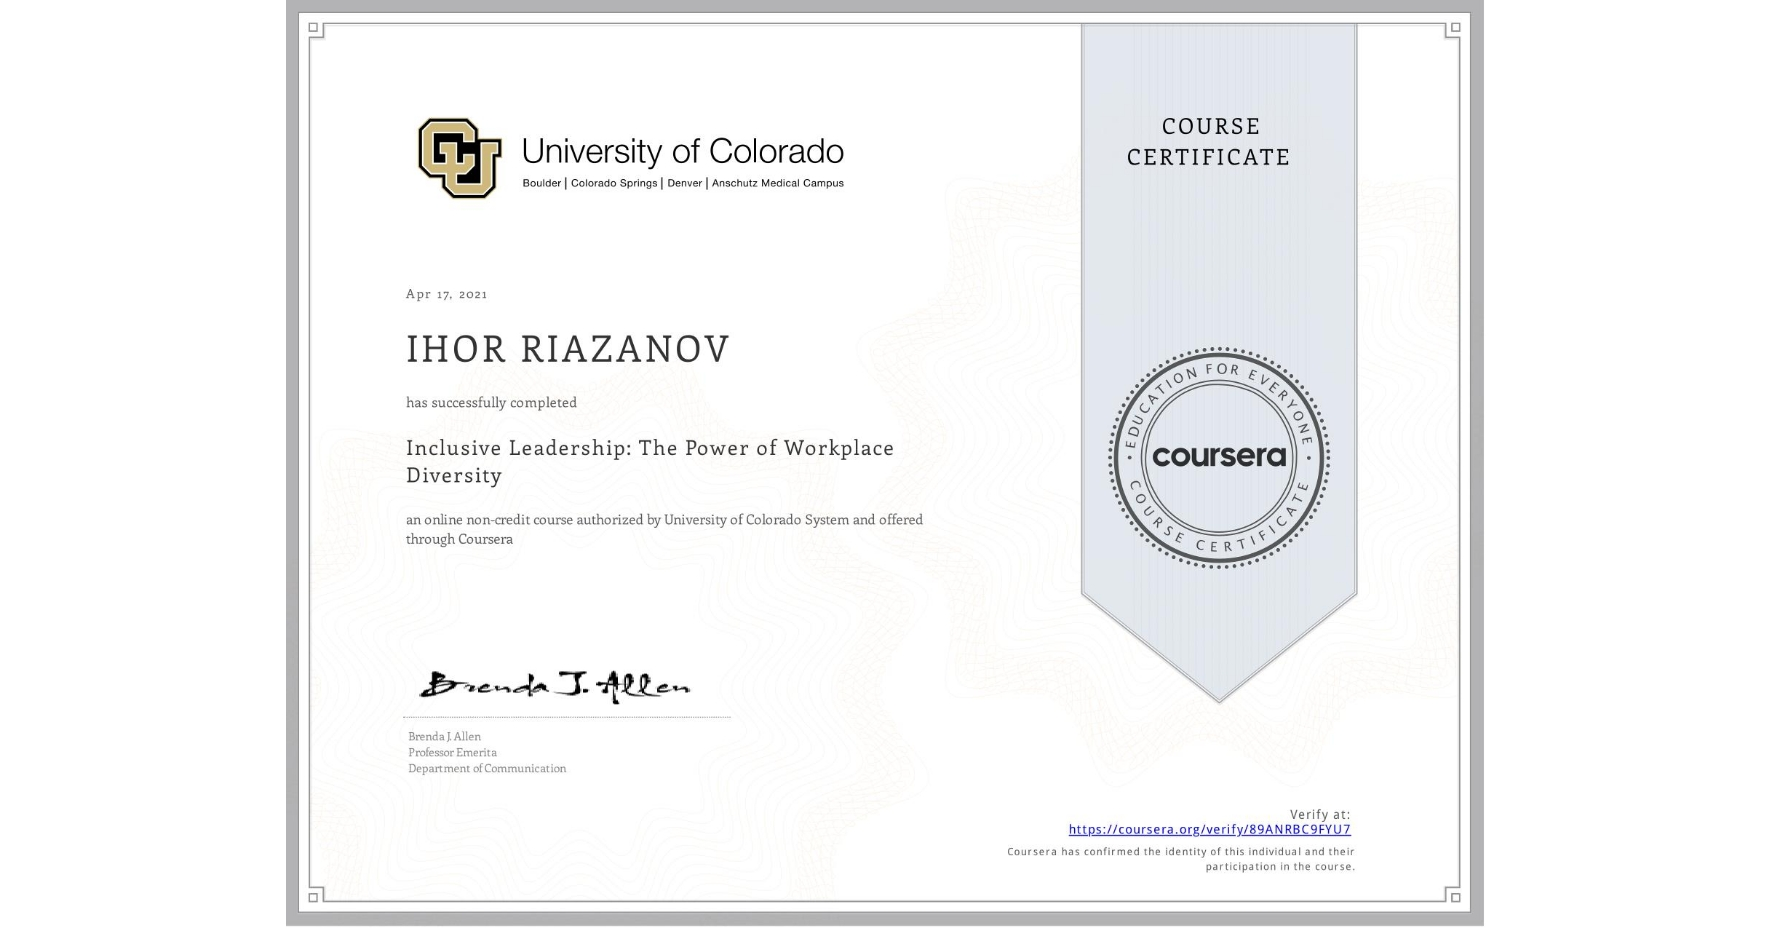 View certificate for IHOR RIAZANOV, Inclusive Leadership: The Power of Workplace Diversity, an online non-credit course authorized by University of Colorado System and offered through Coursera